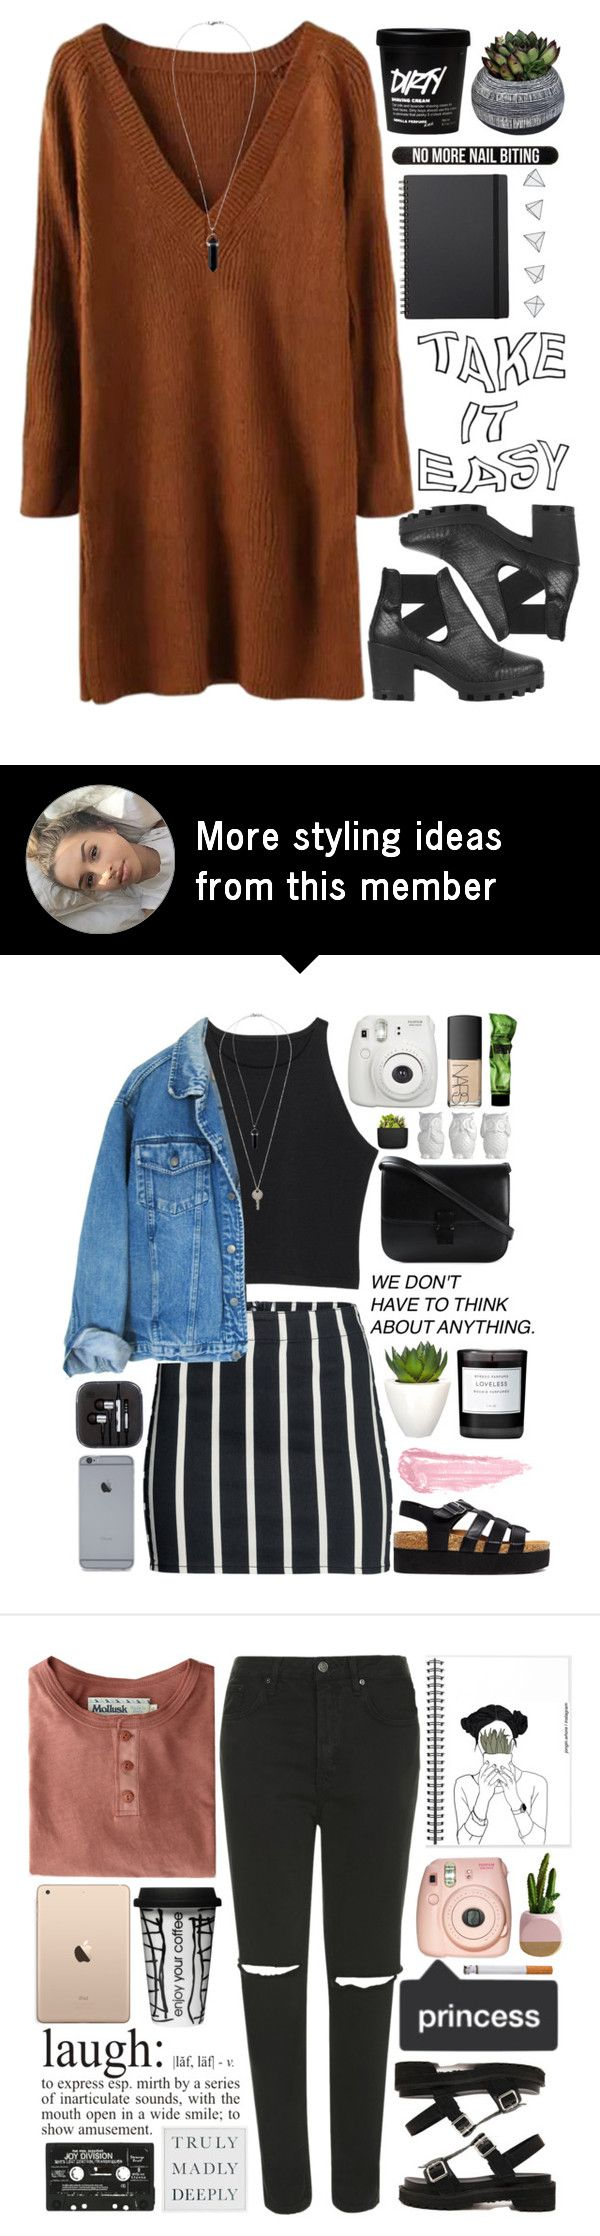 """#383 Egress"" by mia5056 on Polyvore featuring Topshop, Half Light Honey, Bershka and Muji"